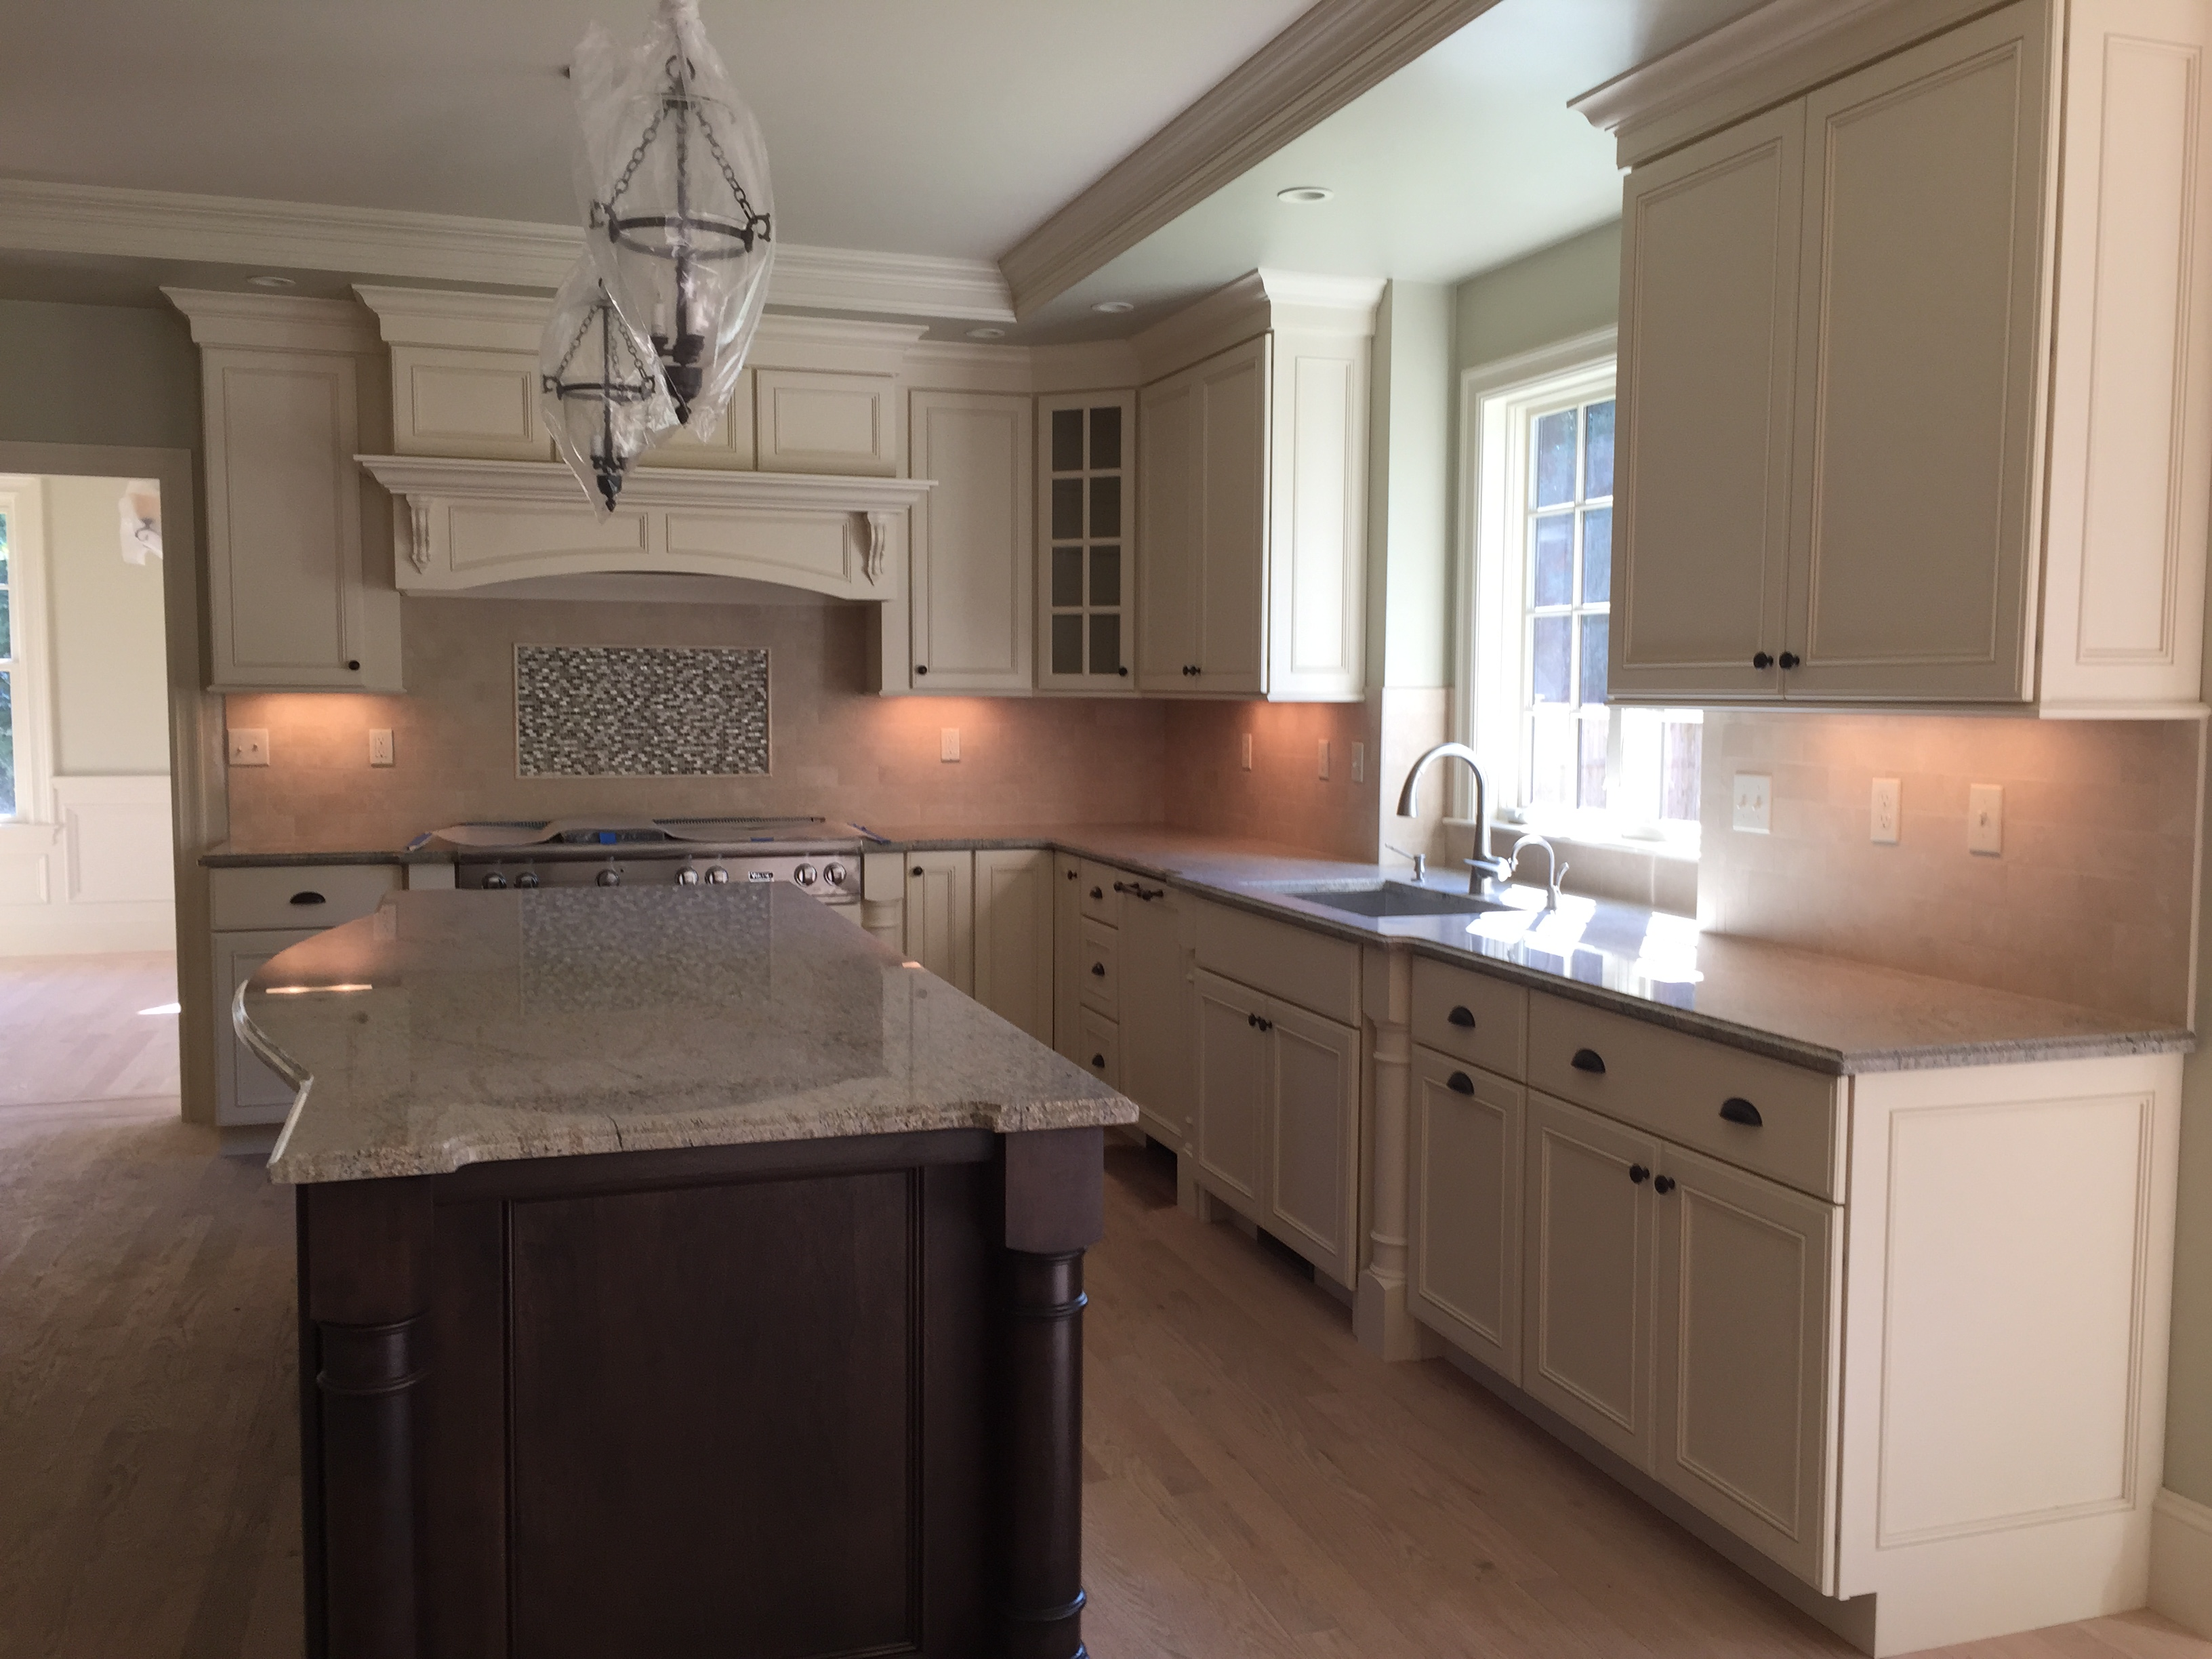 New Kitchen in Wellesley, MA